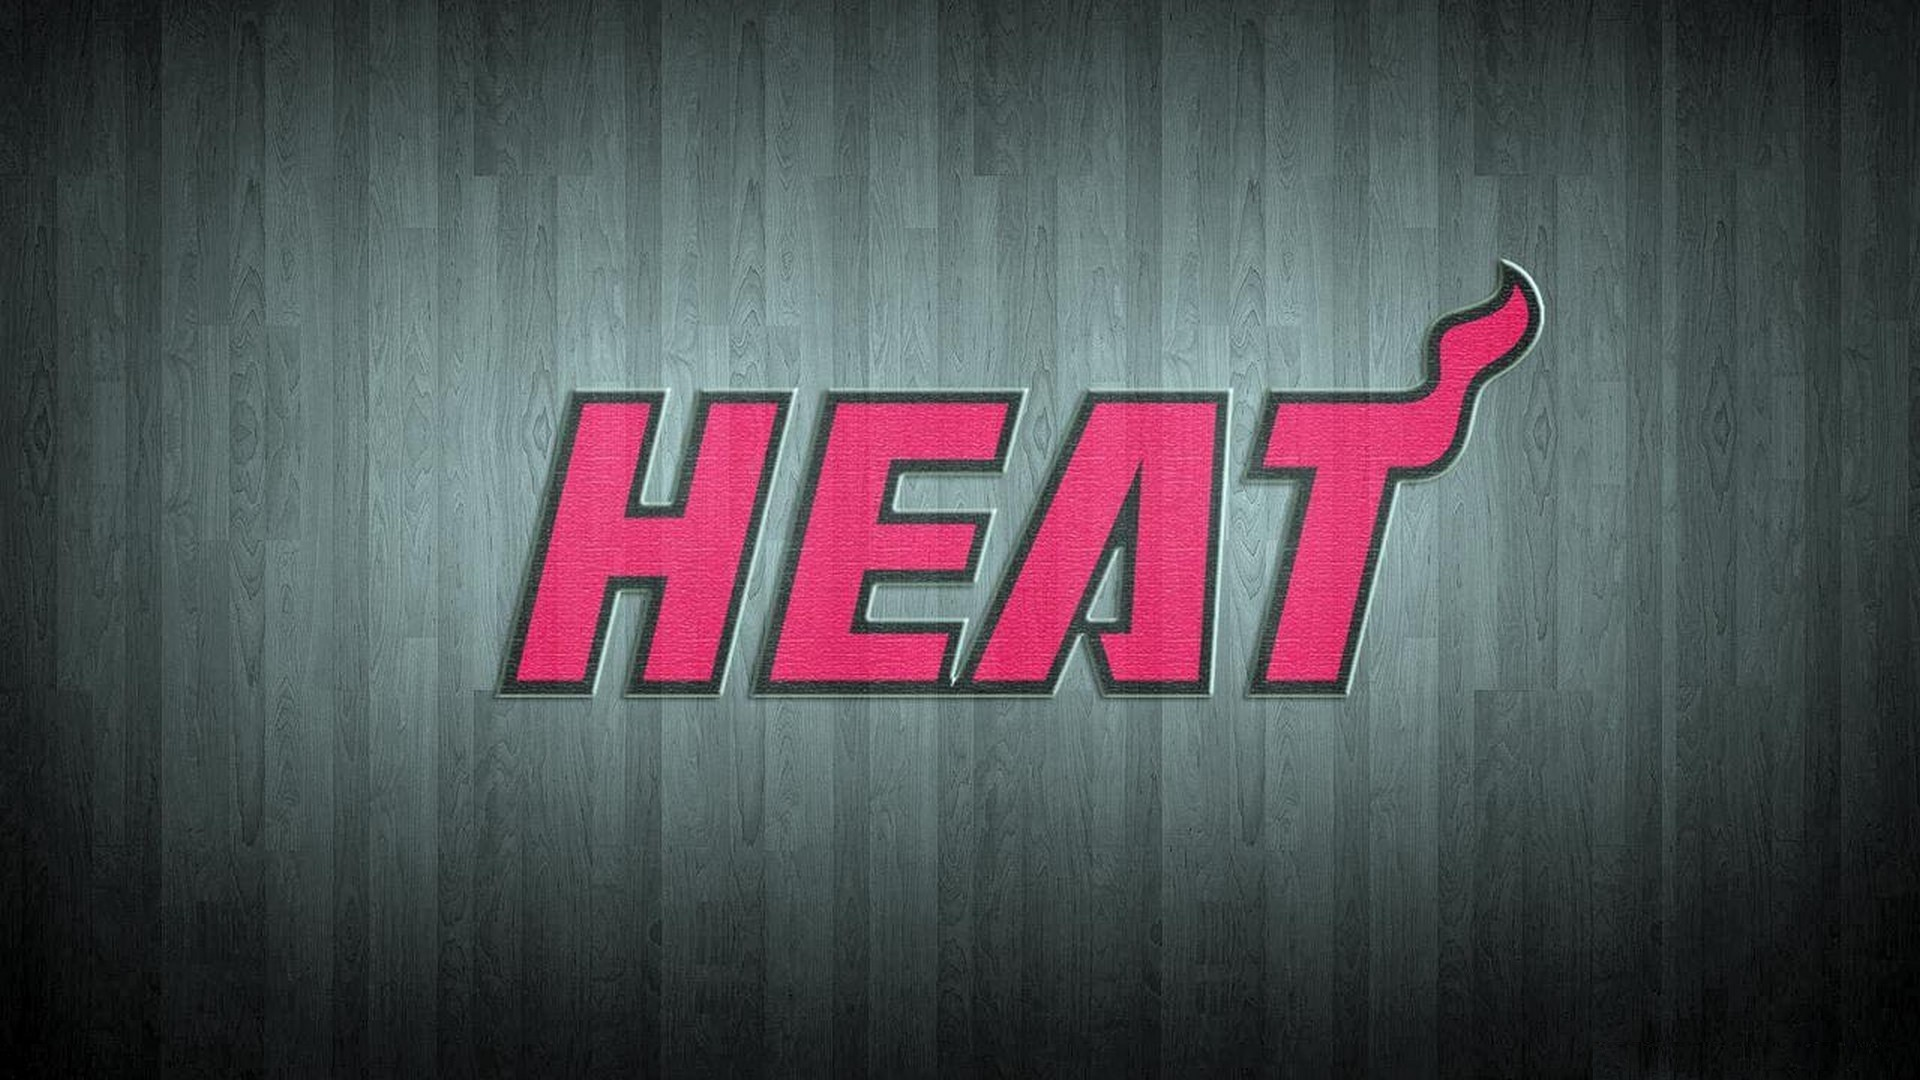 1920x1080 Miami Heat Backgrounds HD with high-resolution  pixel. You can use  this wallpaper